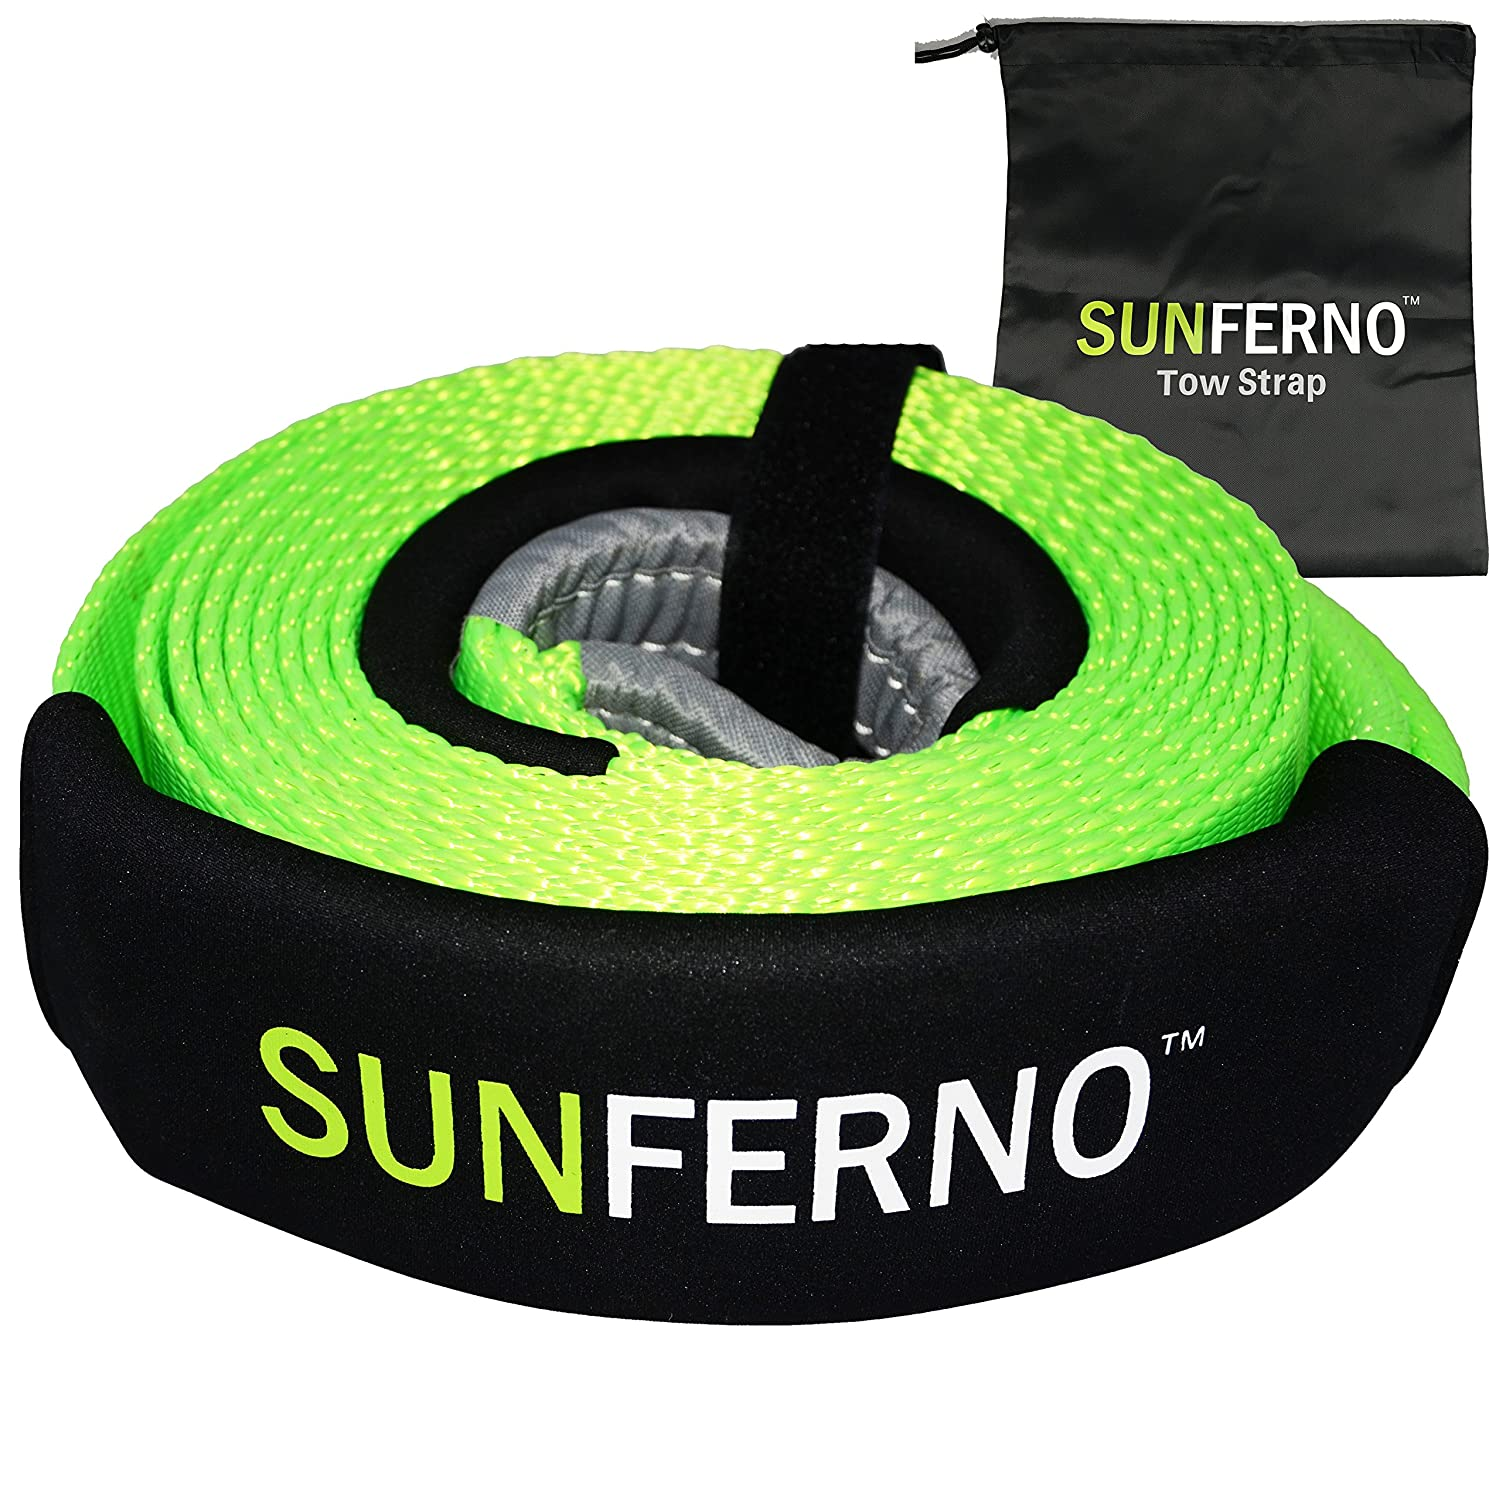 Ultimate Tow Recovery Strap 35000lb - Recover Your Vehicle Stuck in Mud/Snow - Heavy Duty 3' x 20' Winch Snatch Strap - Protective Loops, Water-Resistant - Off Road Truck Accessory - Bonus Storage Bag Sunferno 4332987234